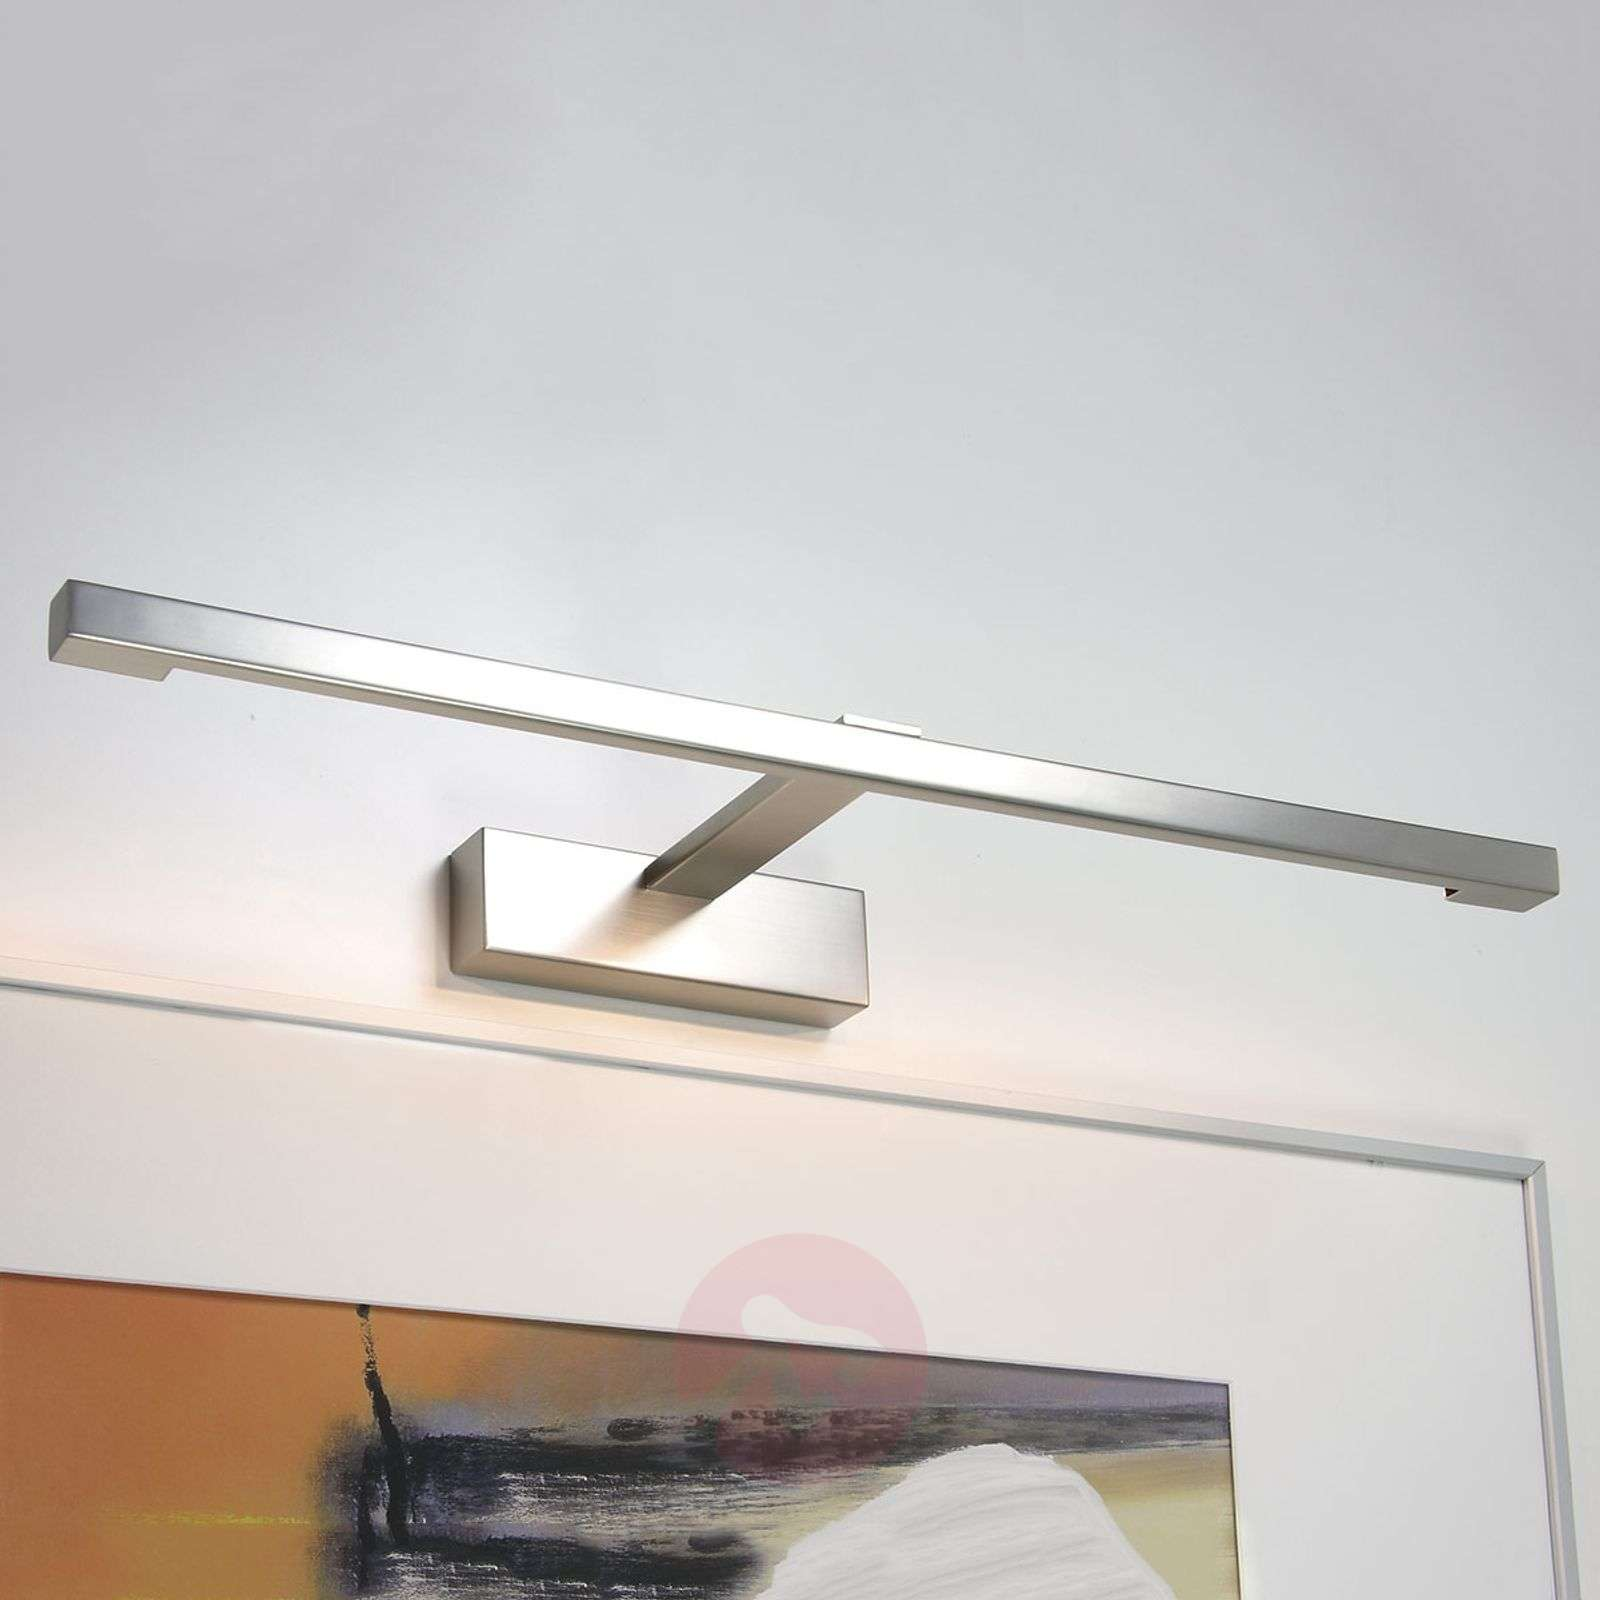 Teetoo 550 Picture Wall Light Modern 12 V-1020251X-04